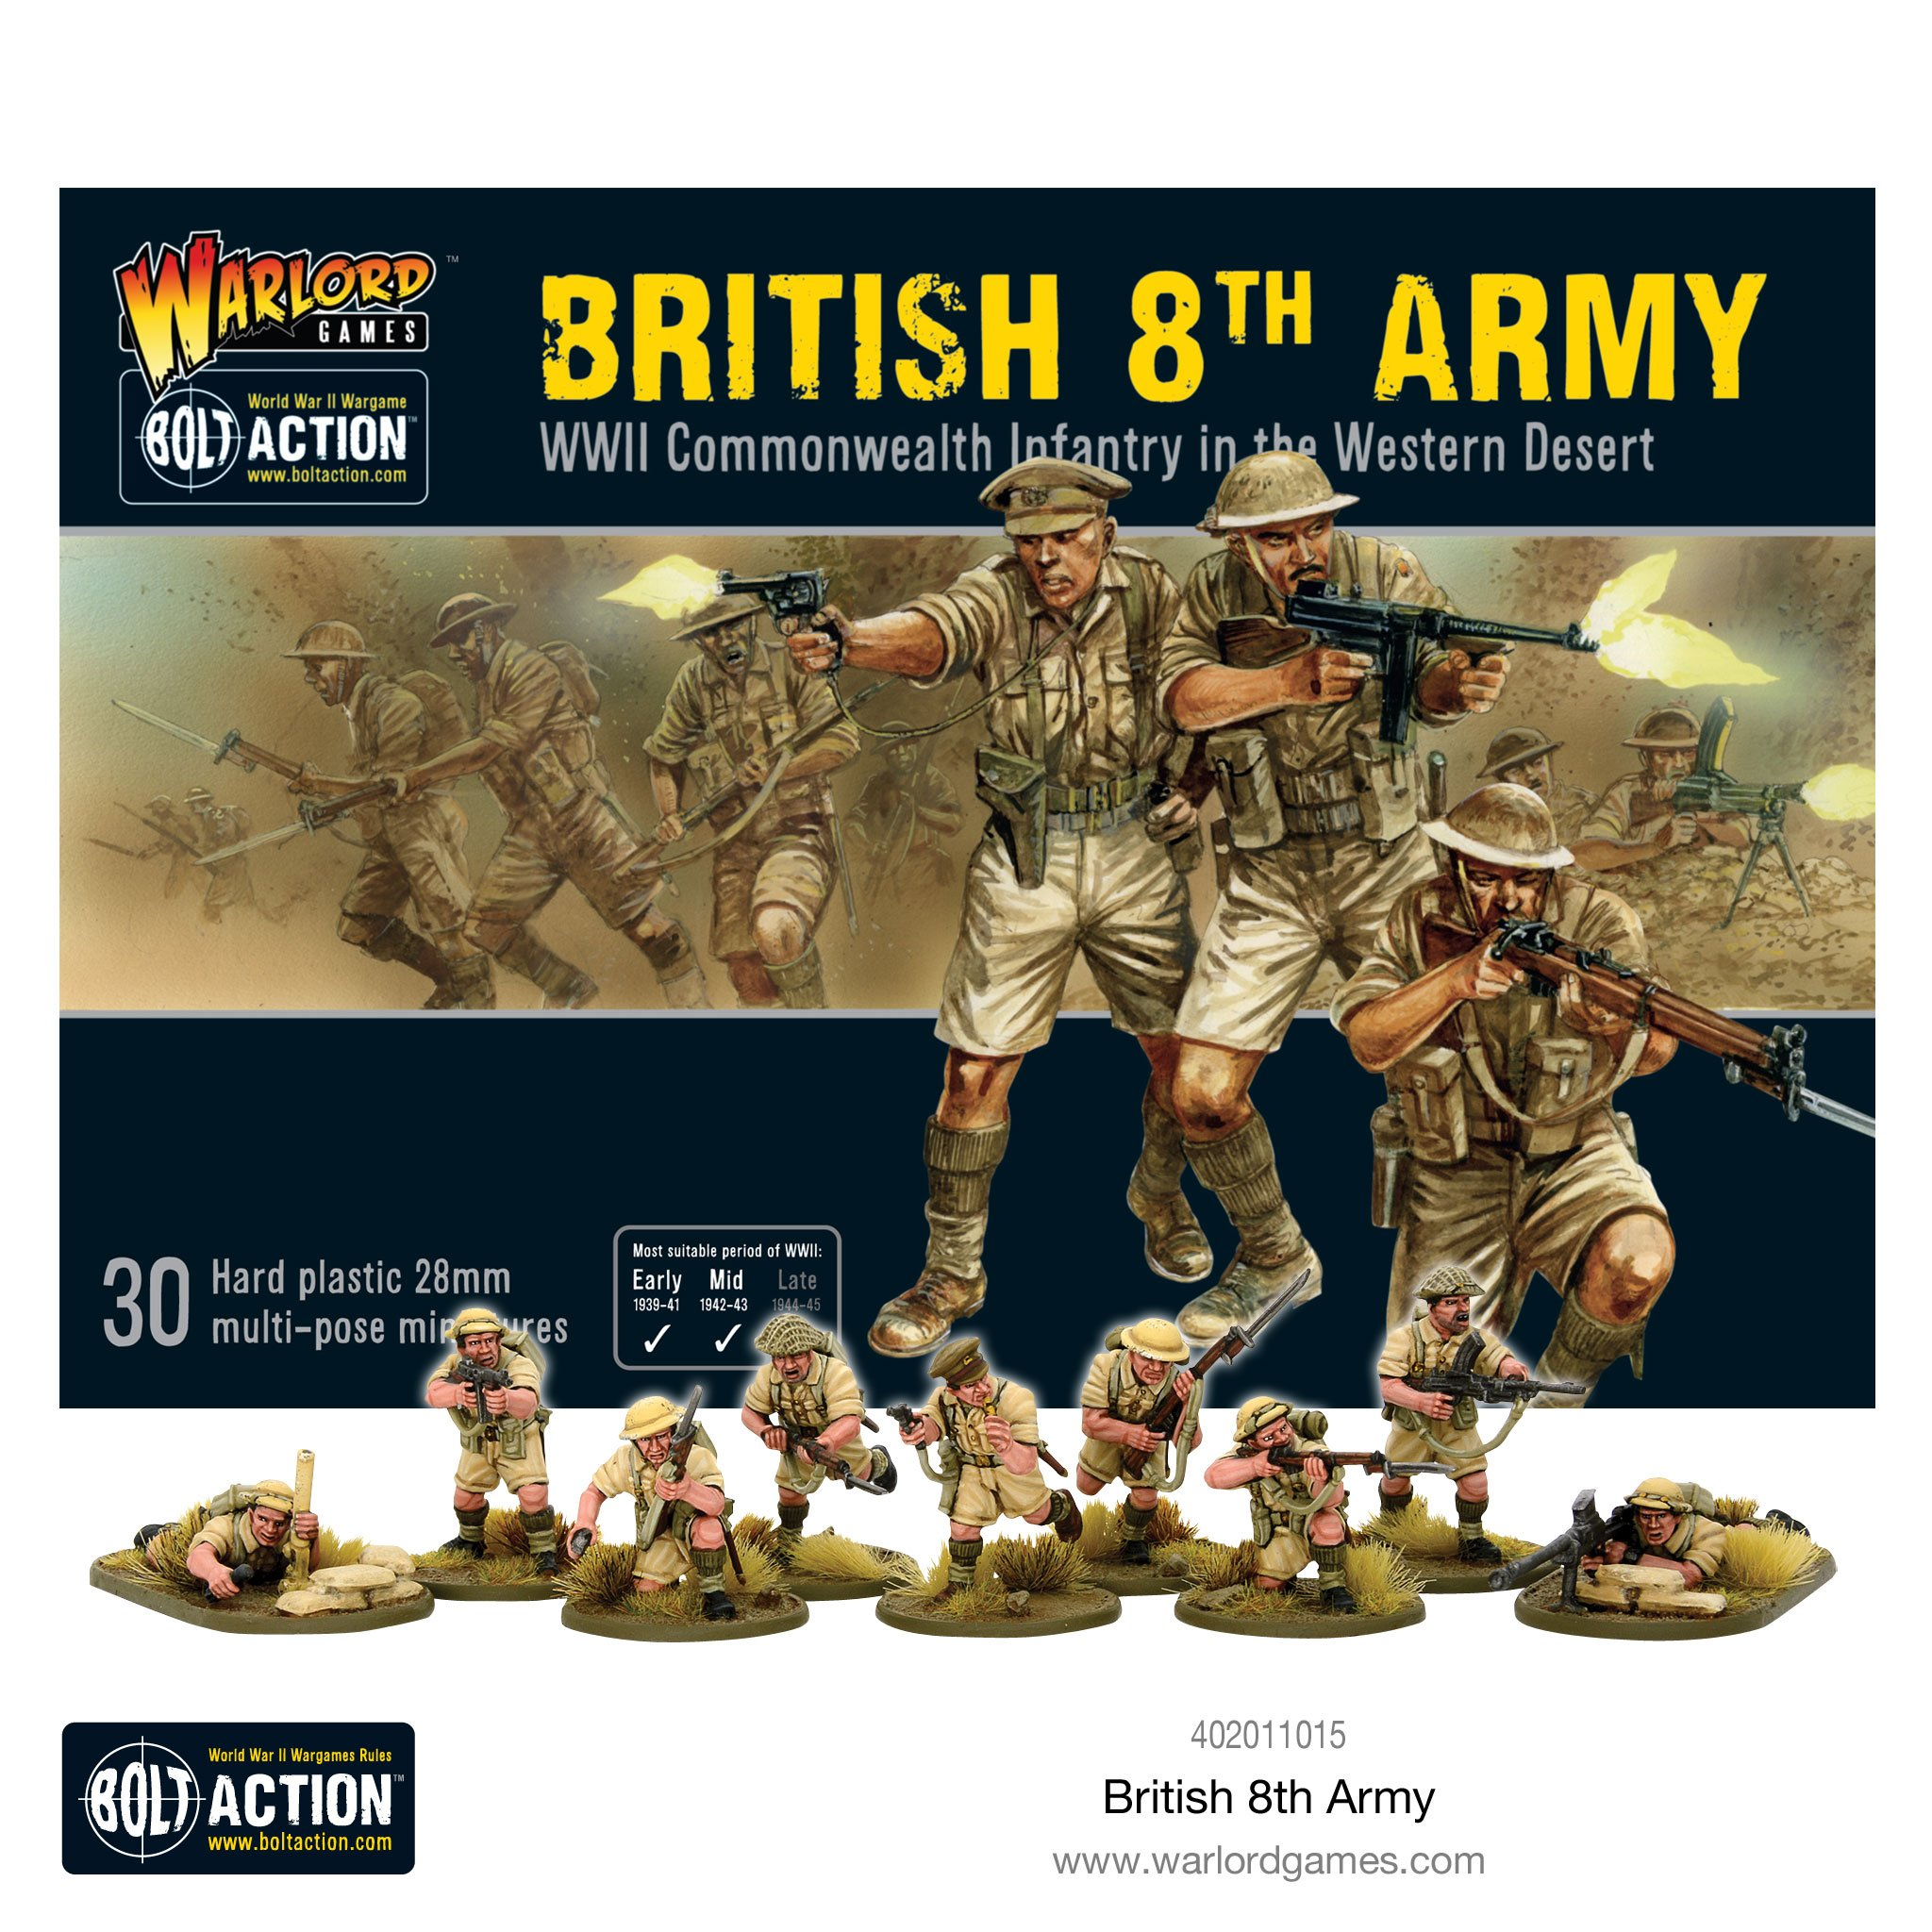 WWII FINNISH RIFLE SQUAD WARLORD GAMES BOLT ACTION 1//56 SCALE 28MM